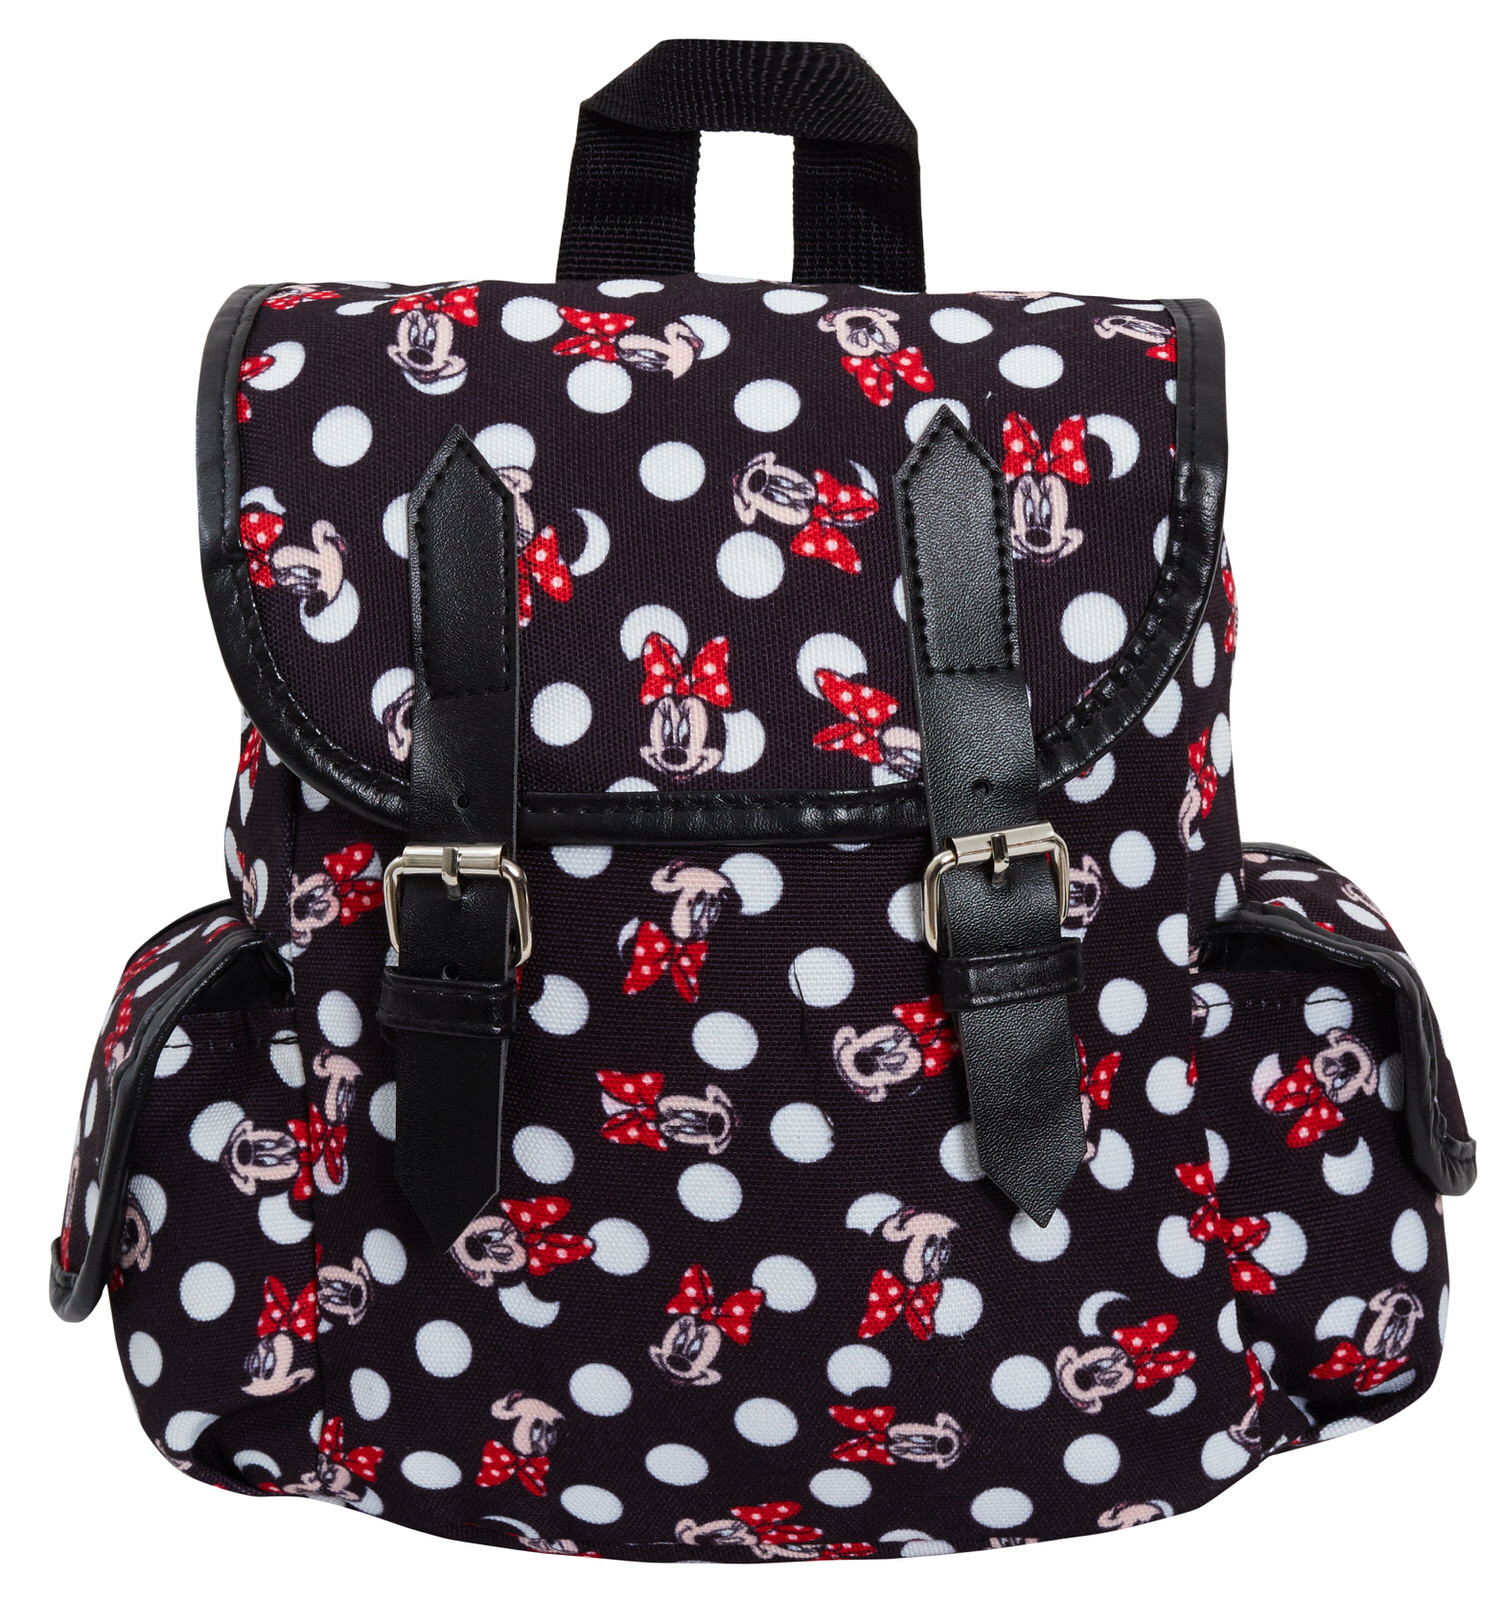 Details about Disney Minnie Mouse Luxury Duffle Bag Backpack Womens Girls Kids School Roxy Bag